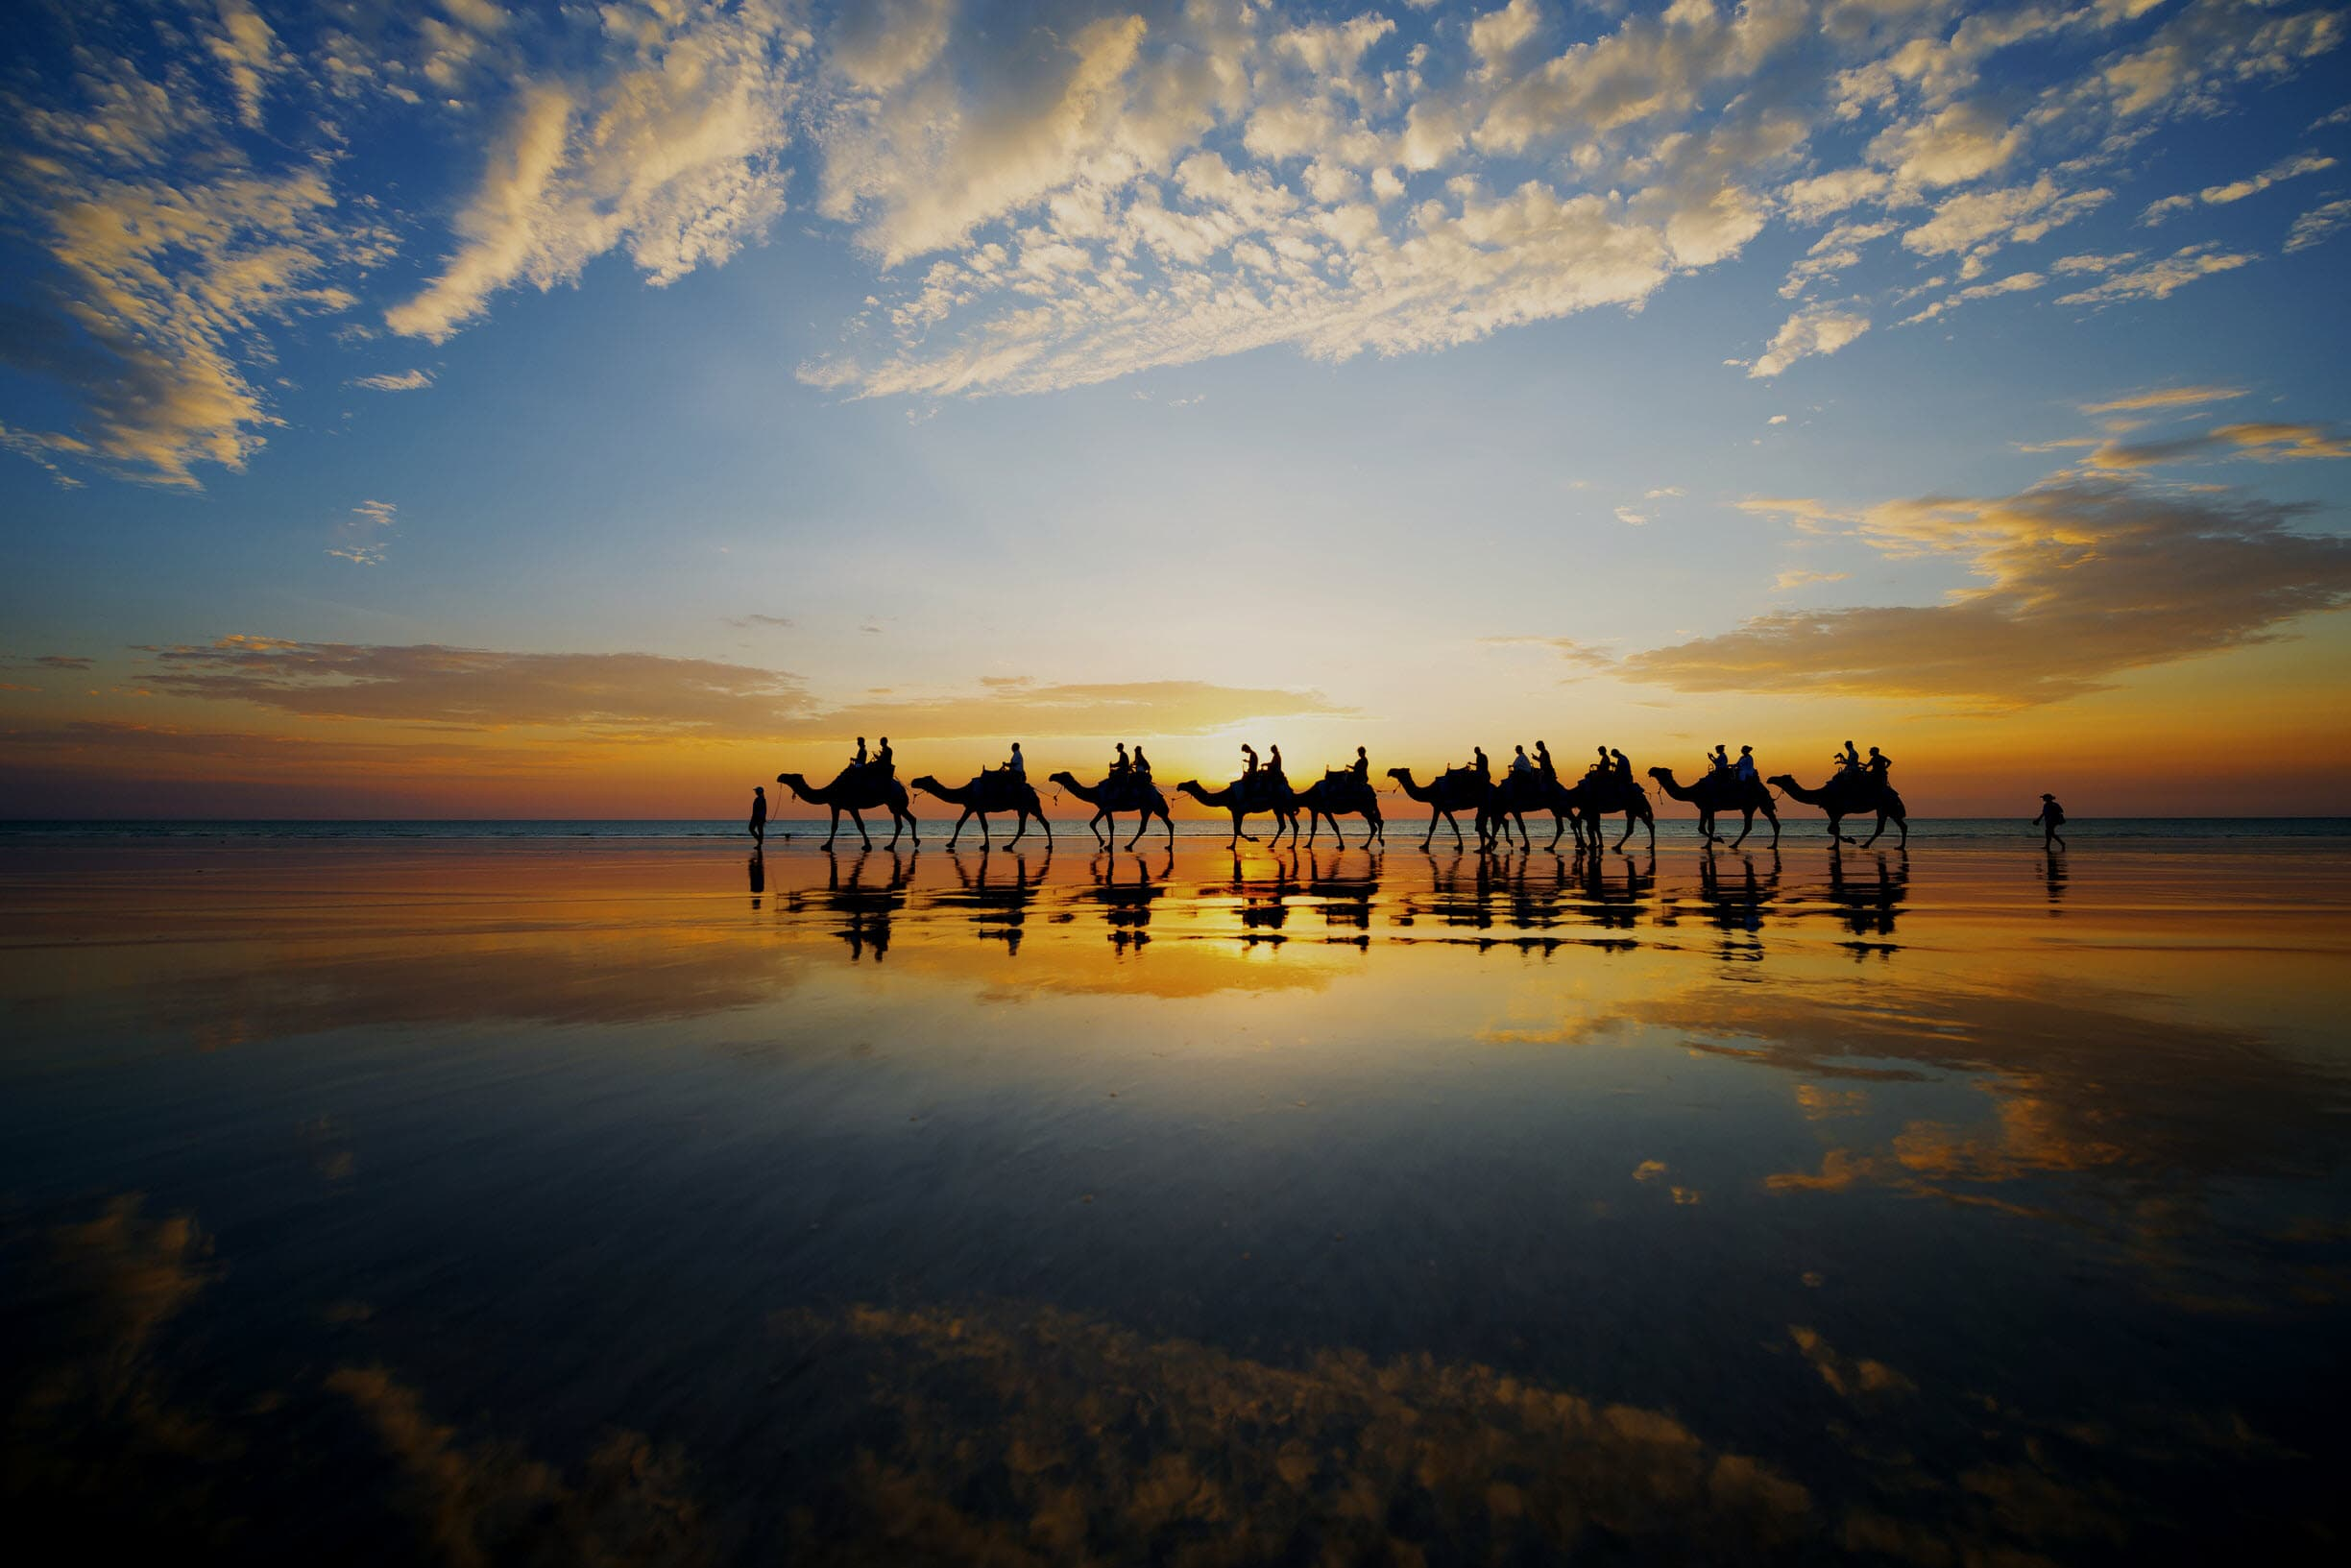 Check out: Broome, Australia's exotic pearling town